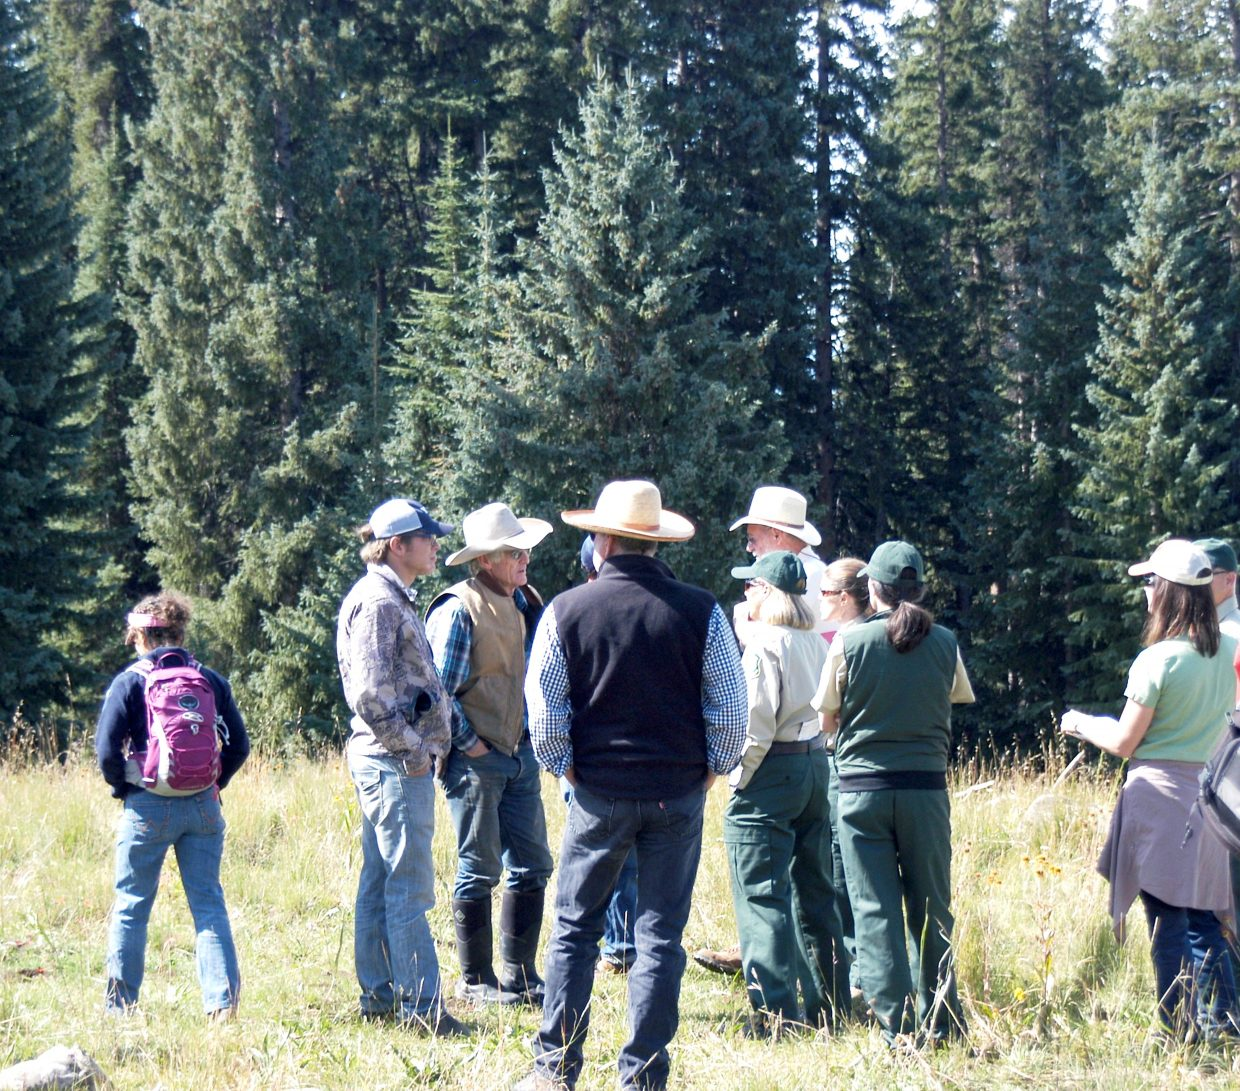 Rancher Bill Fales, centers, asks questions of U.S. Forest Service personnel and others who were on hand for the Tuesday site visit.